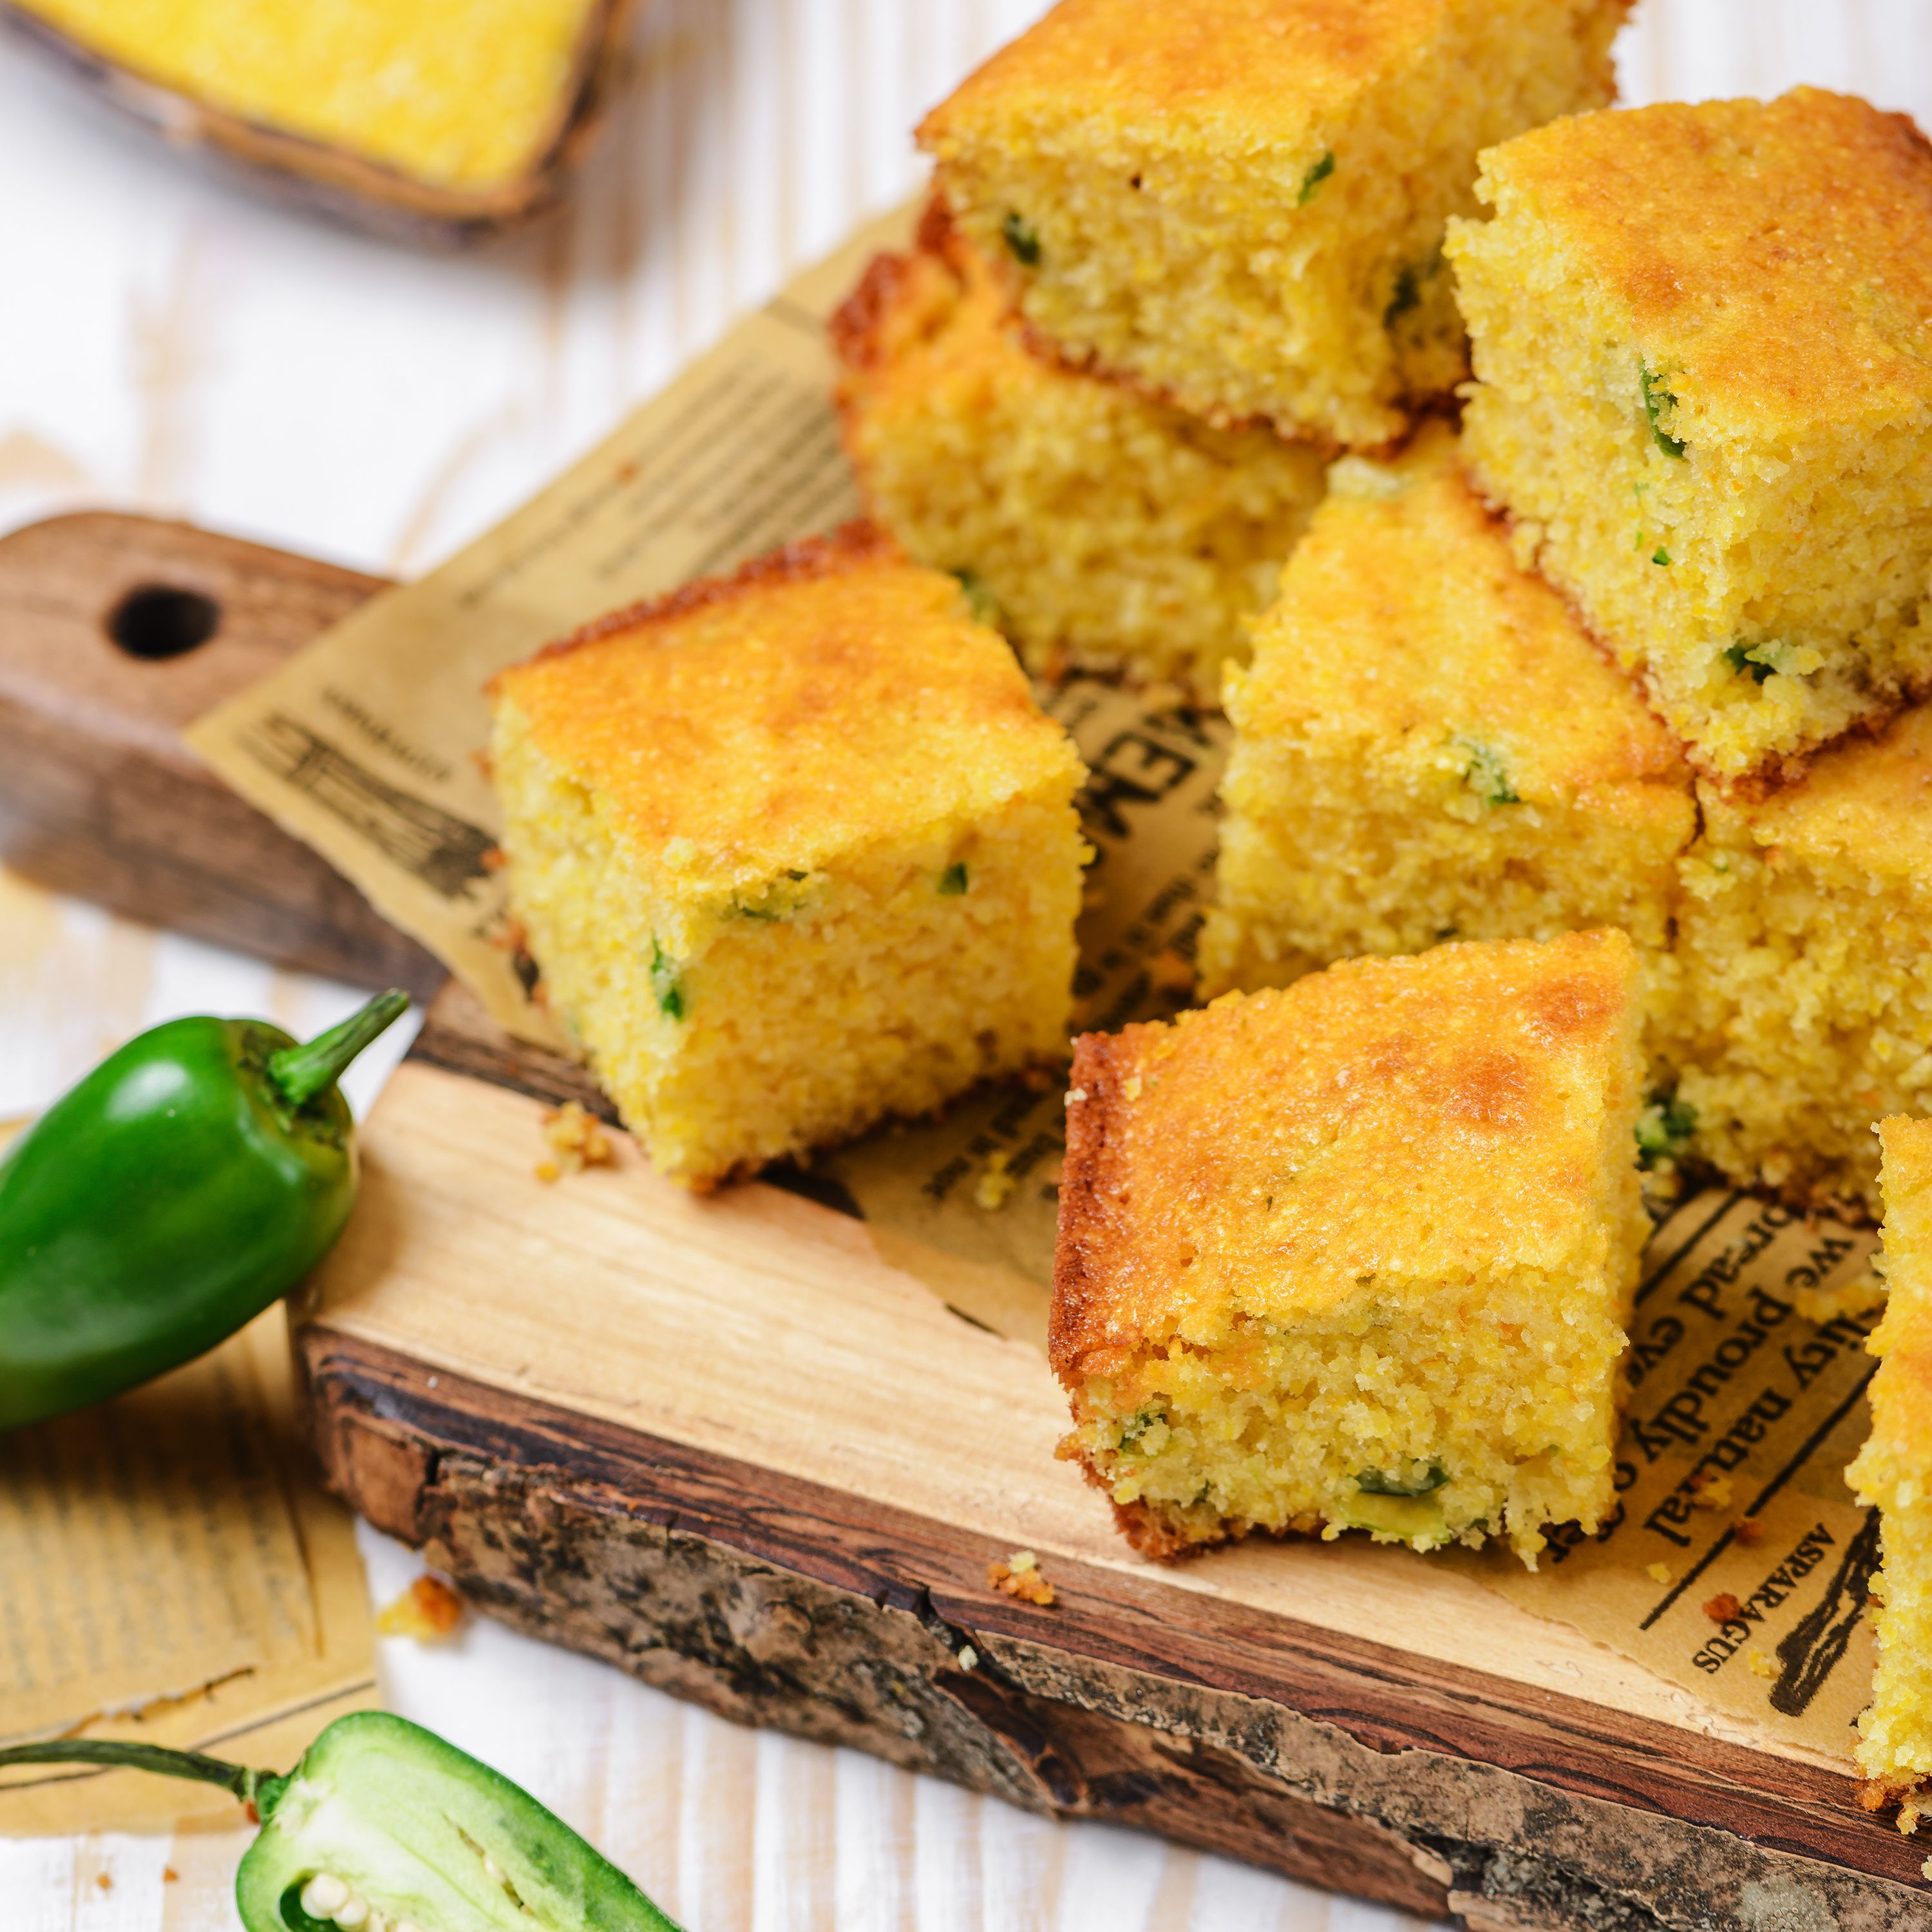 Let cool and cut jalapeno cornbread